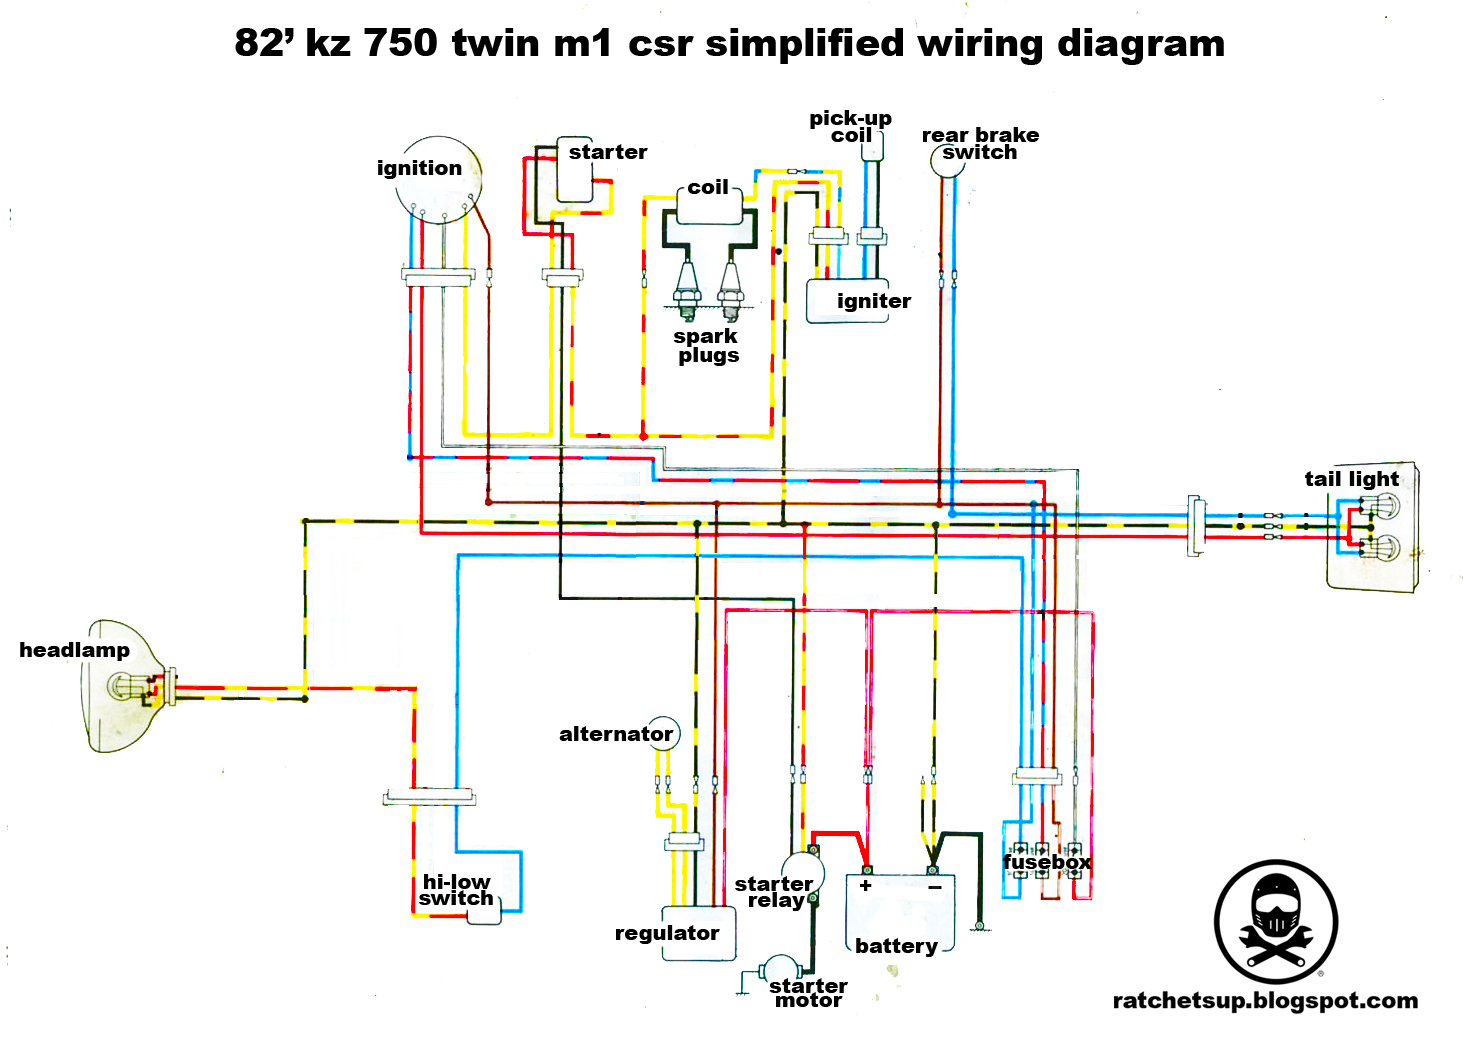 kz750+simple+diagram simplified minimal kz750 csr wiring diagram kzrider forum kz400 wiring diagram at alyssarenee.co